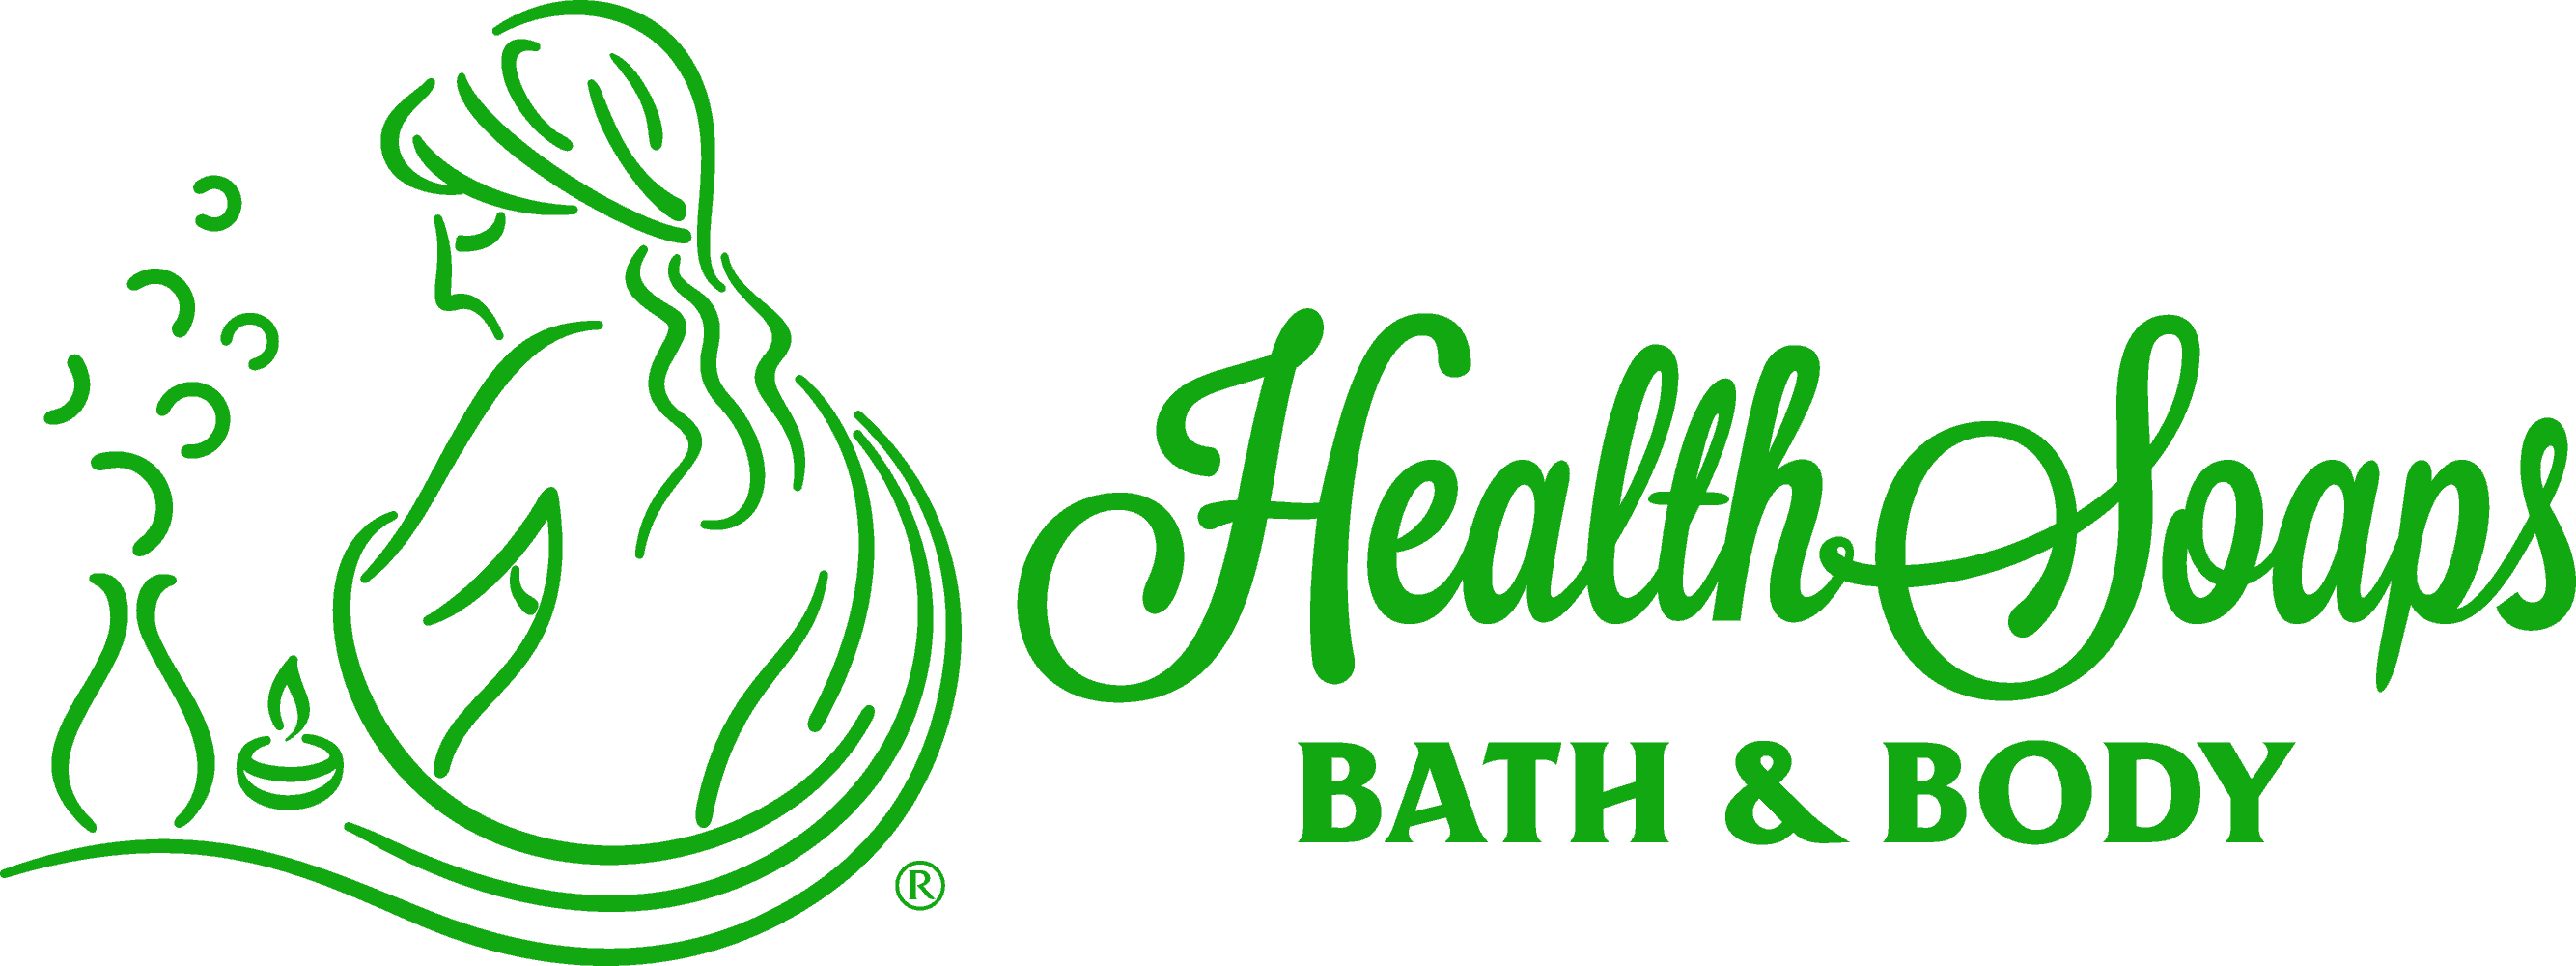 Health Soaps Bath & Body